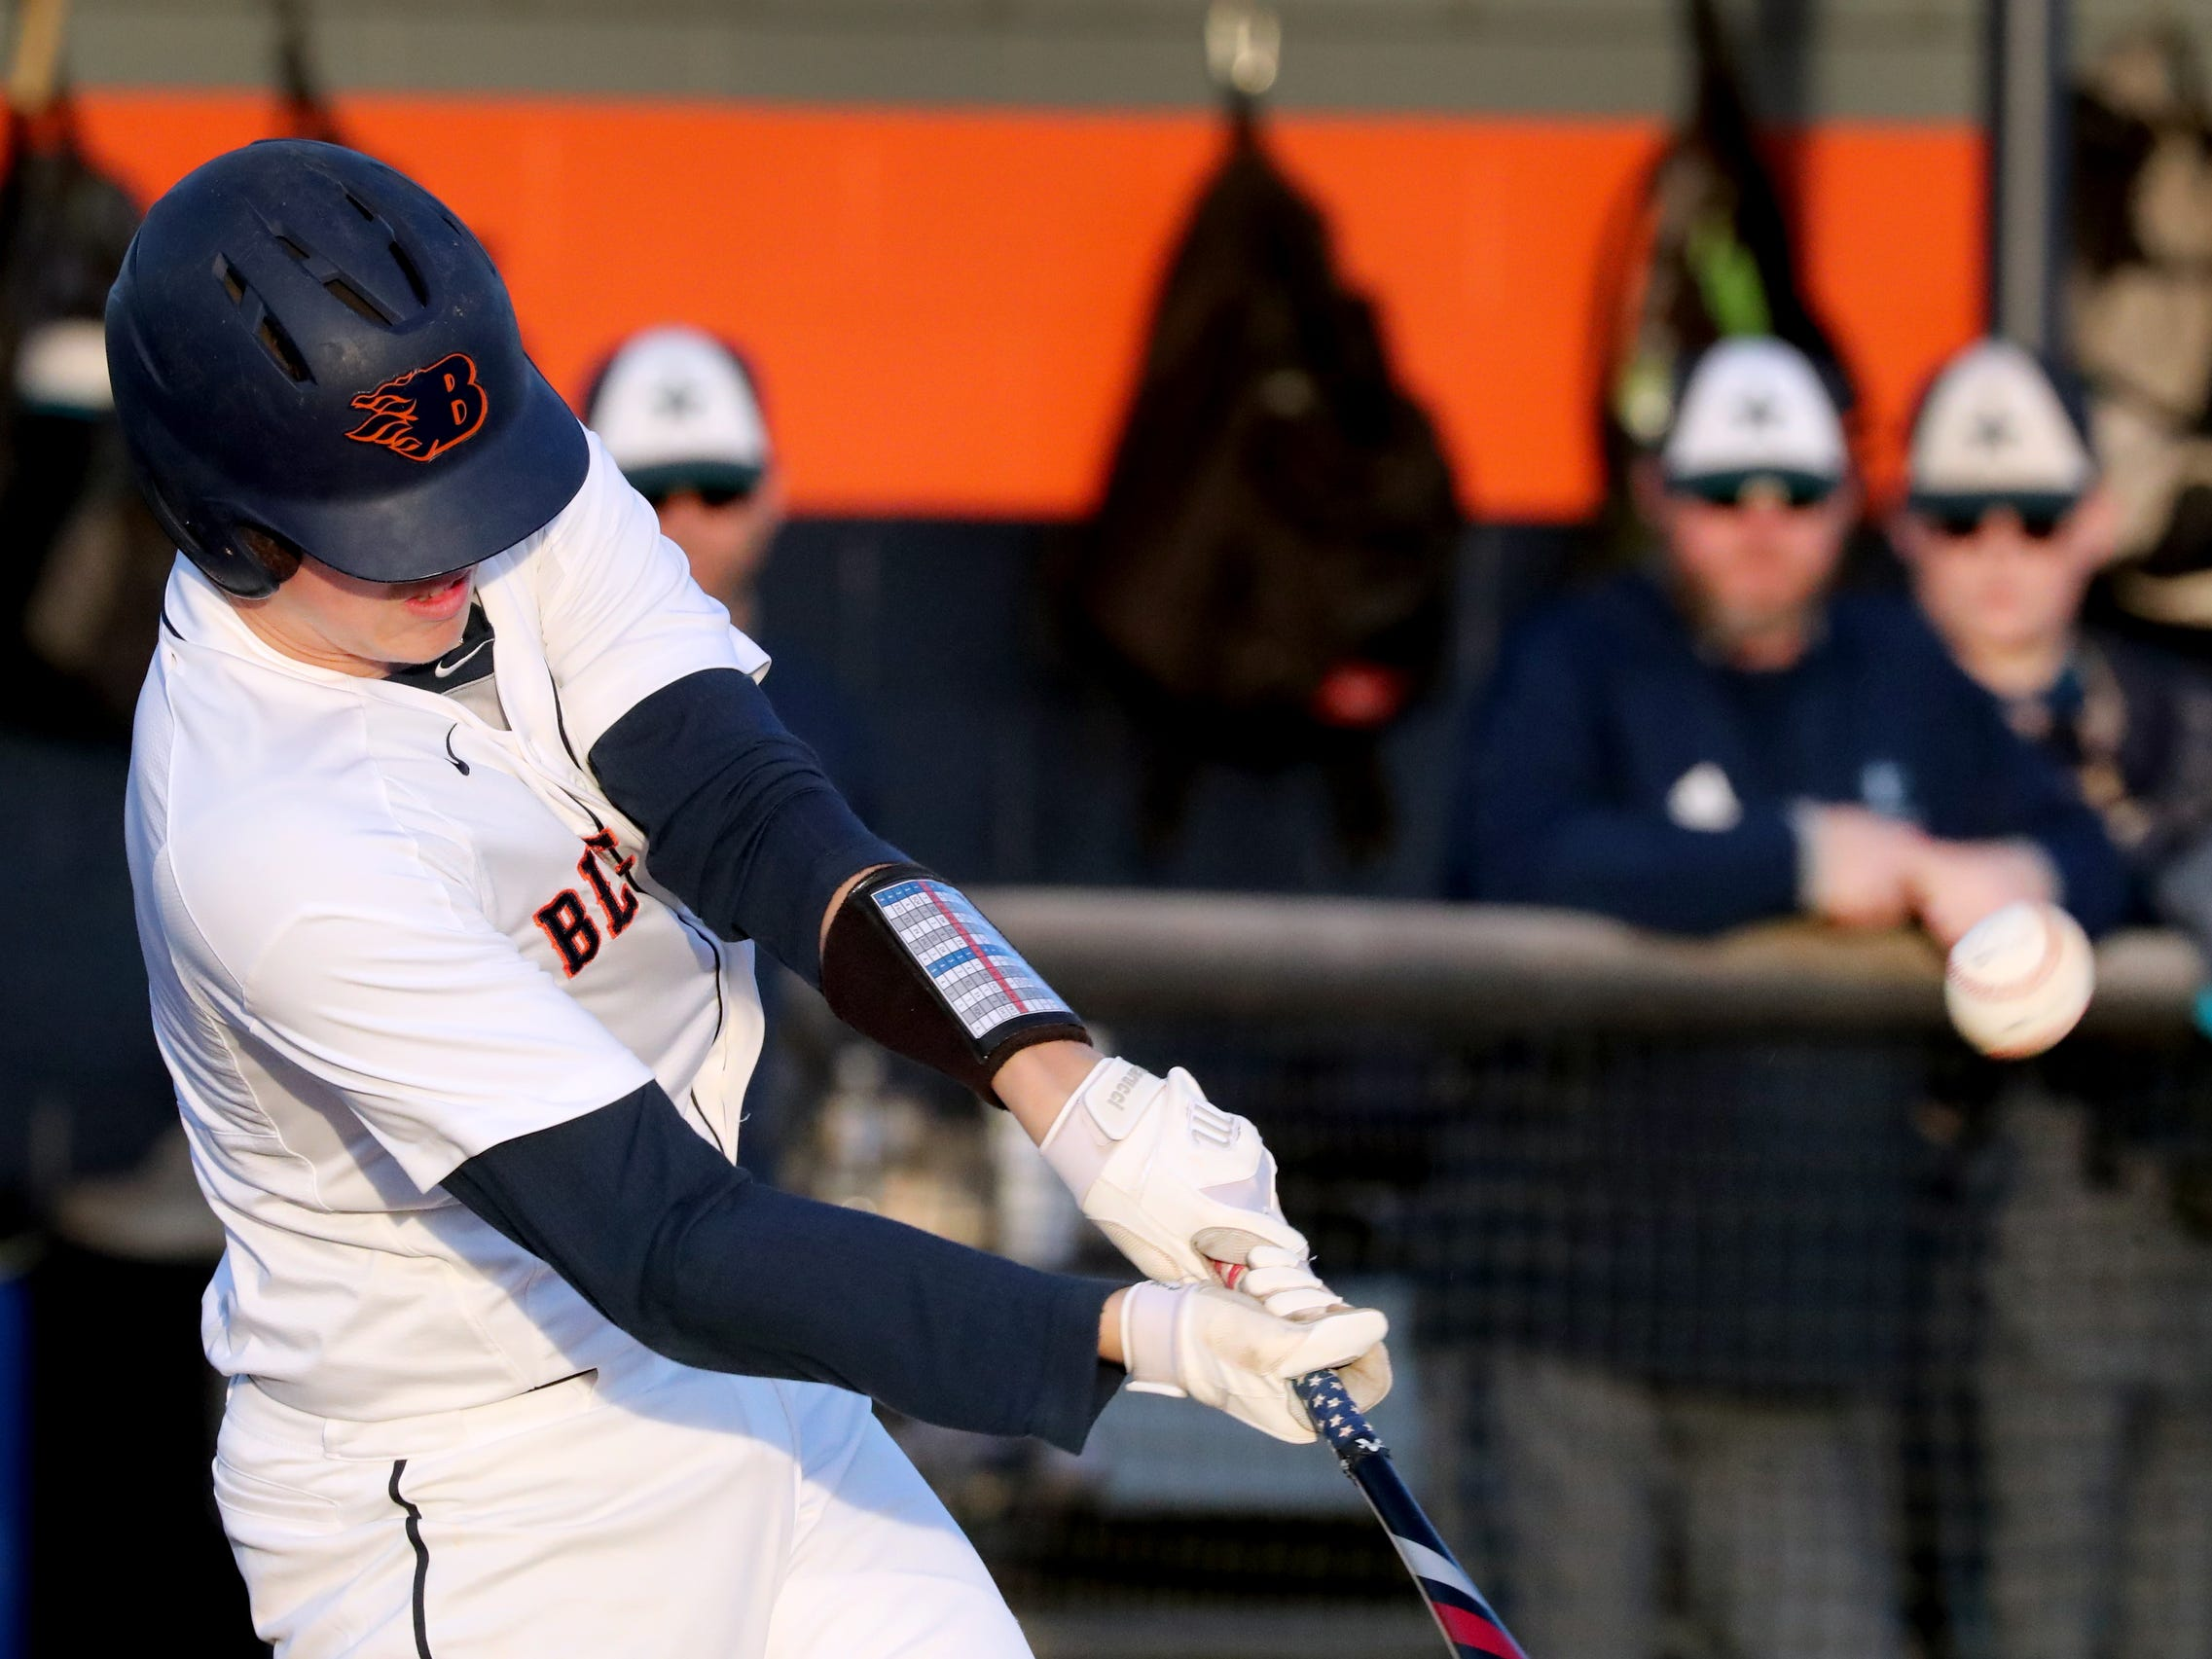 Blackman's Drew Beam (11) makes contact with the ball during the game against Siegel on Monday, March 11, 2019.